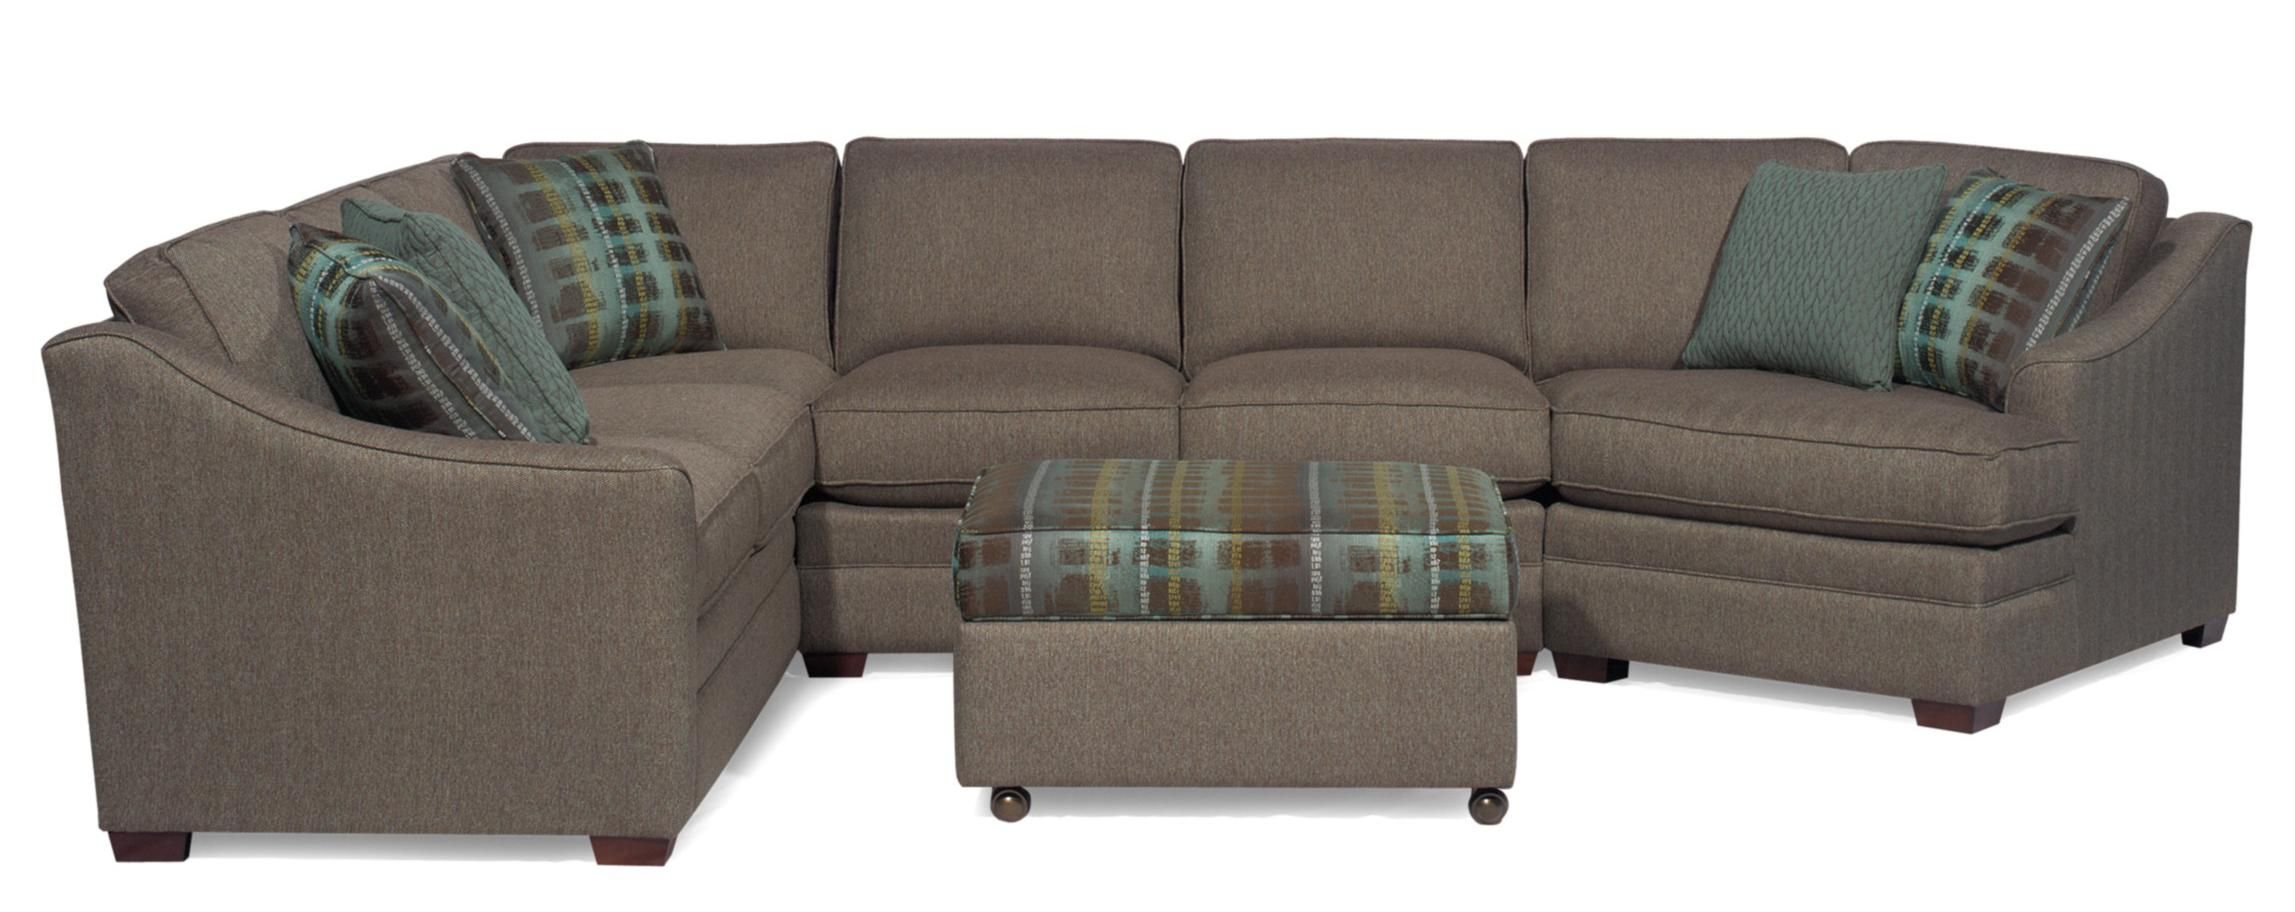 Craftmaster Sectional (F9431 Sect)... We Saw This At Scheels Tonight And  Loved It. Will Have To Remember This For The Basement.